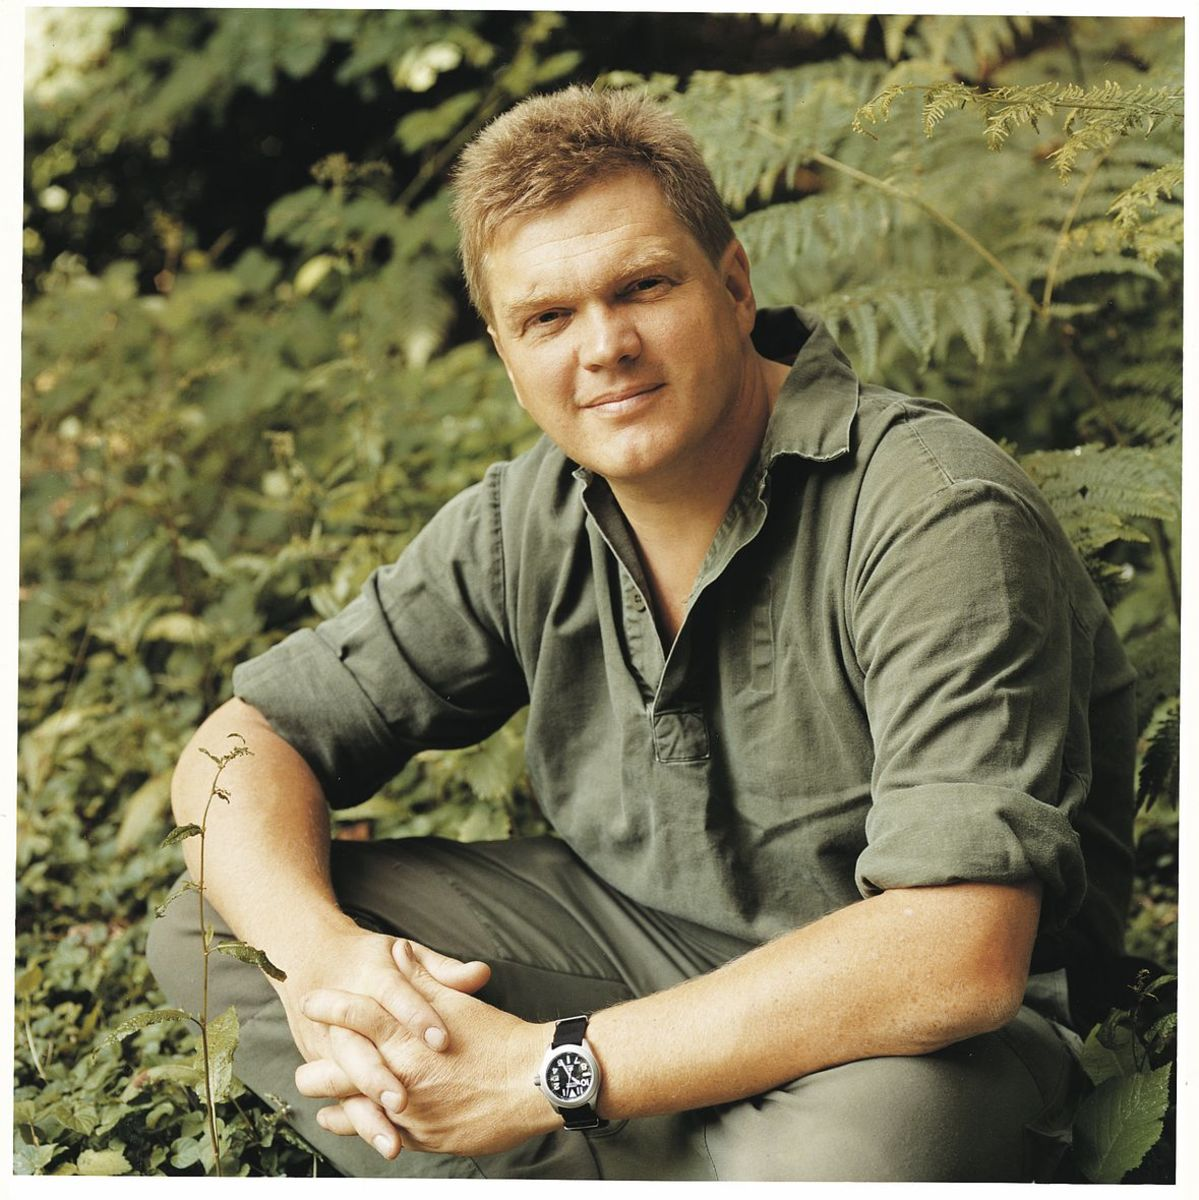 Ray Mears - bigger in the UK than USA